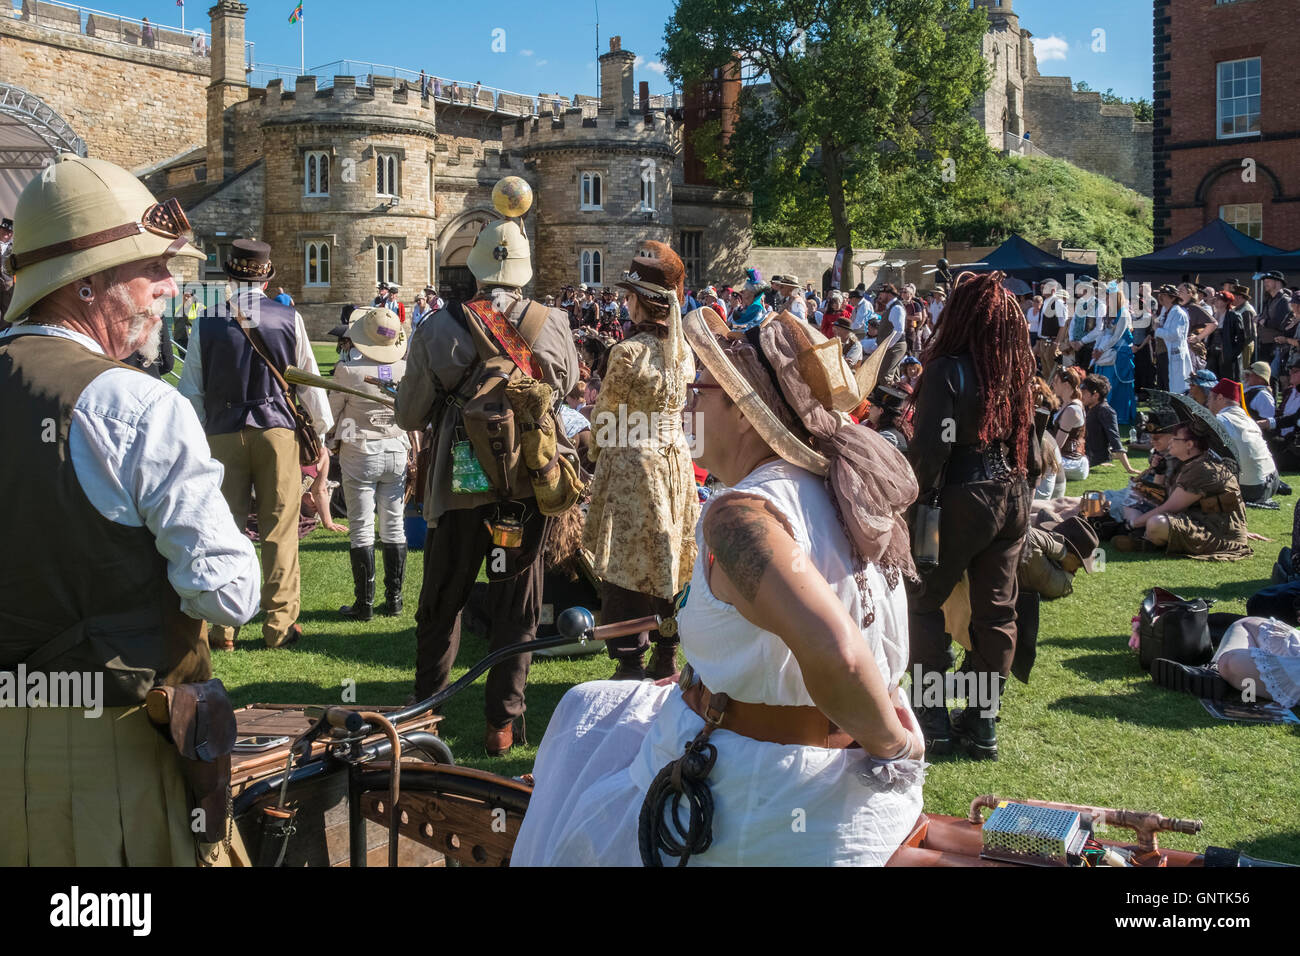 Participants at the 2016 Steampunk Festival, City of Lincoln, UK - Stock Image